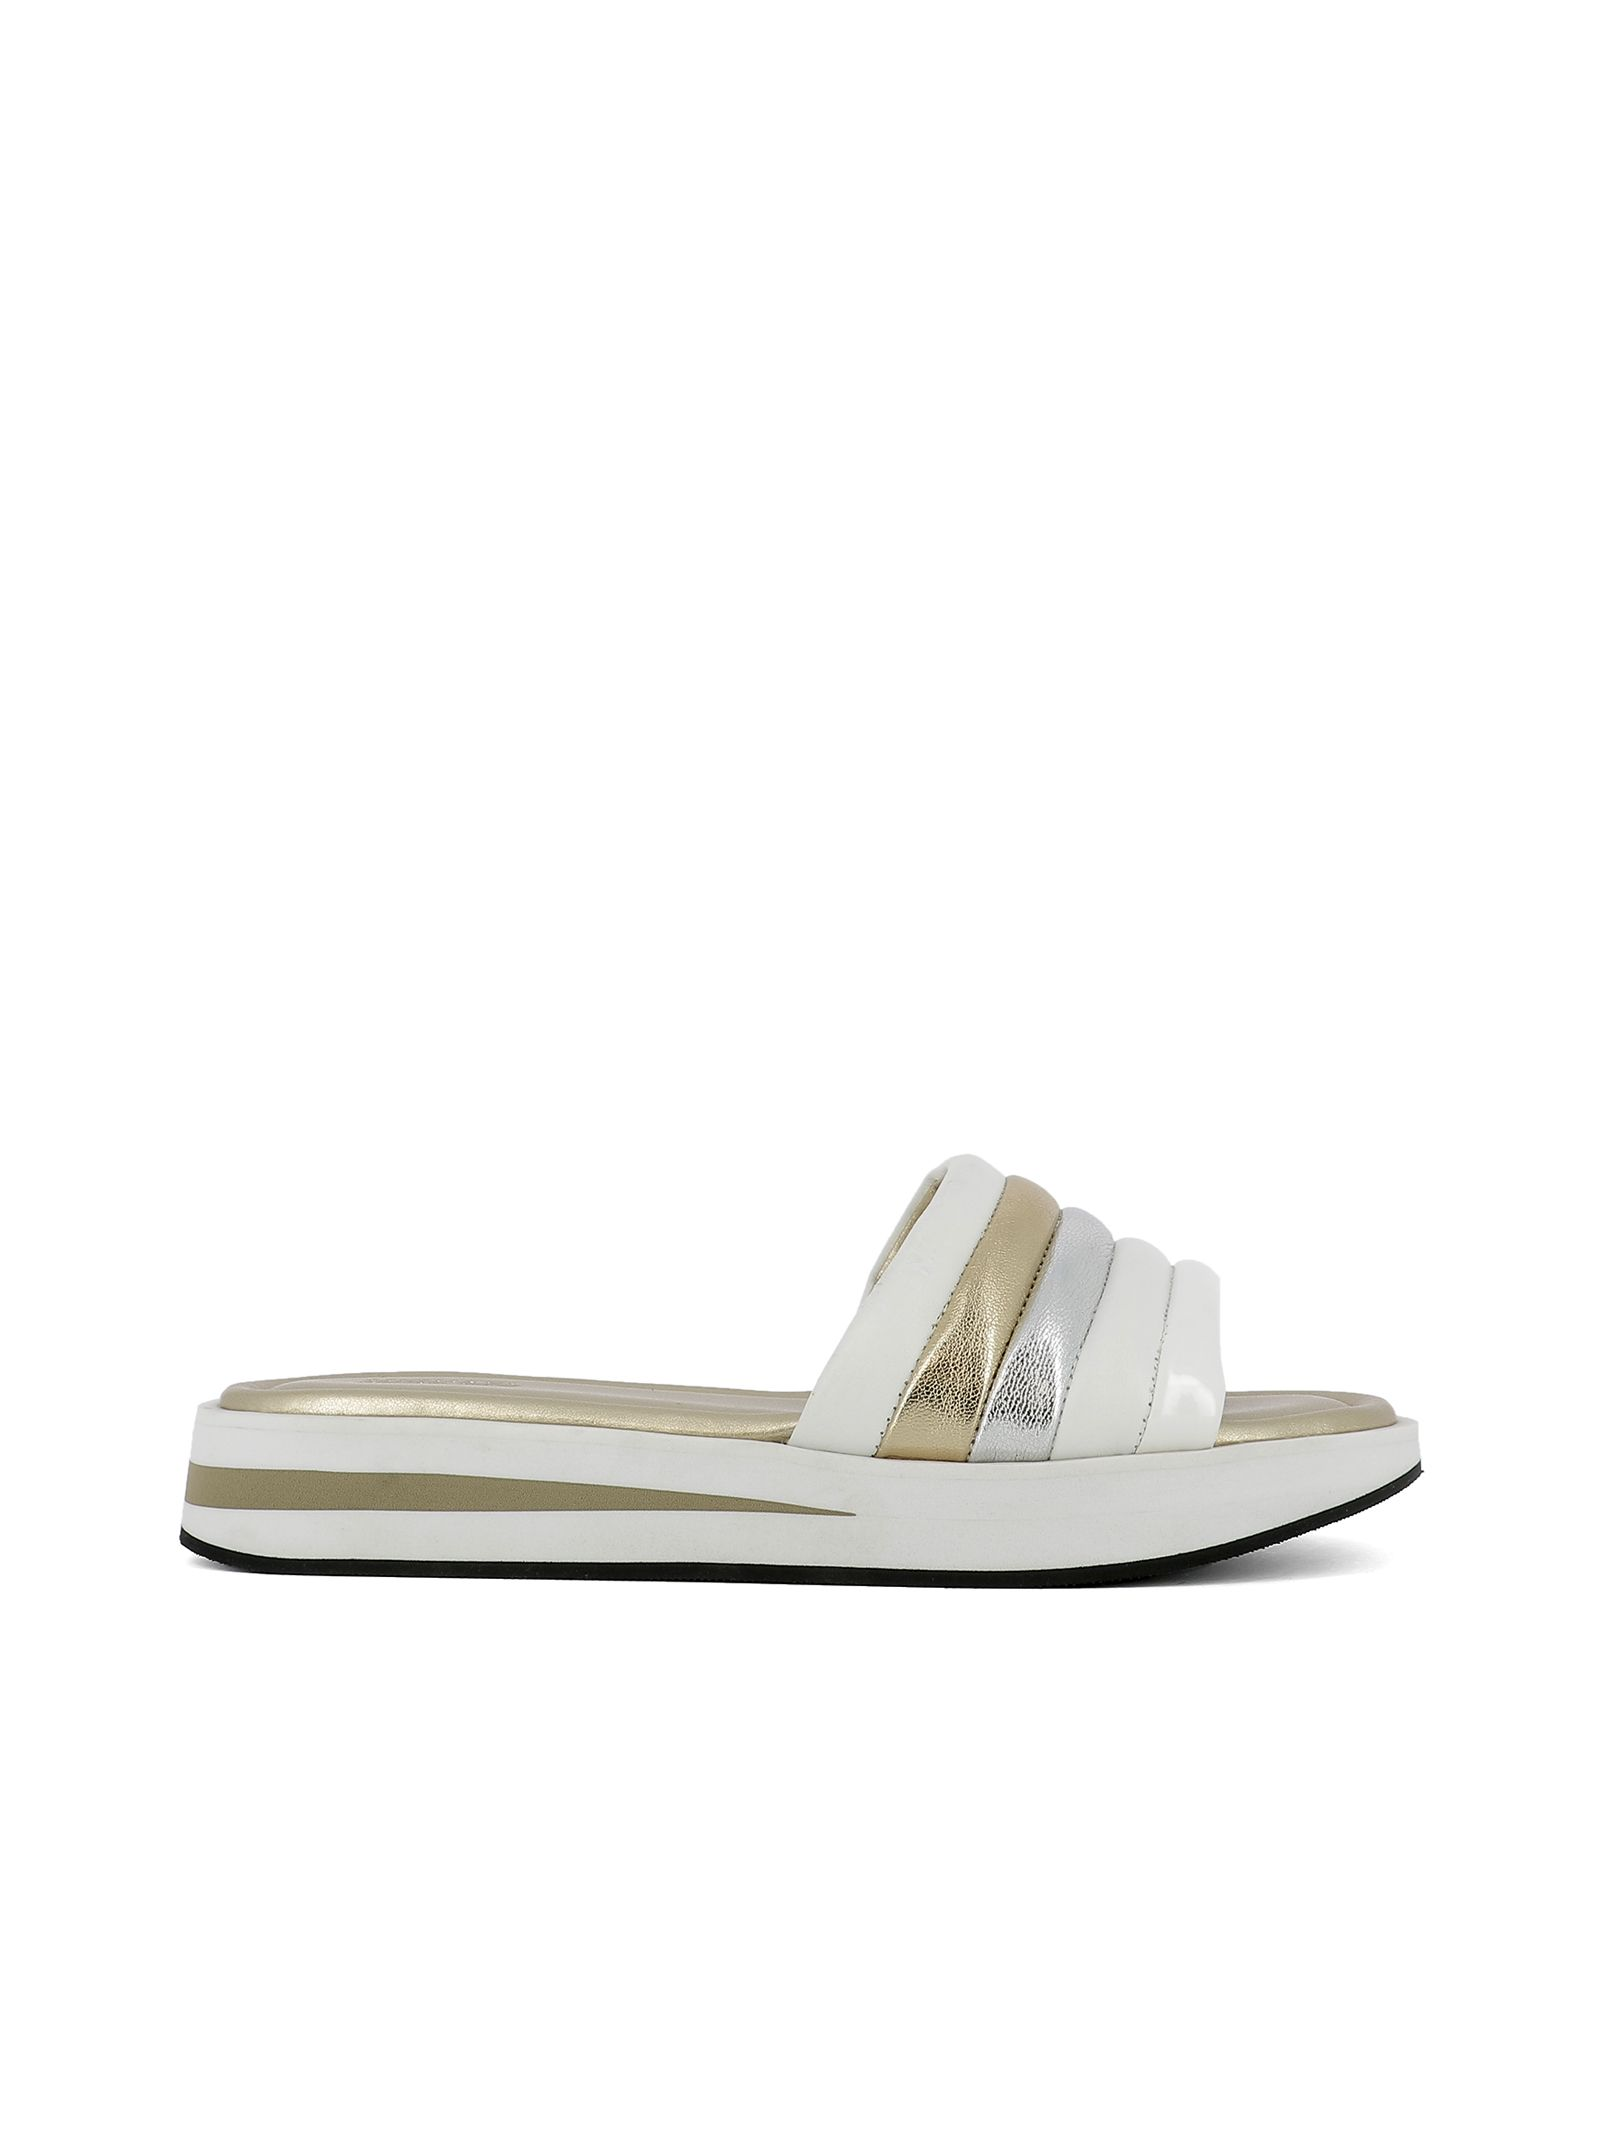 michael kors female white leather sandals